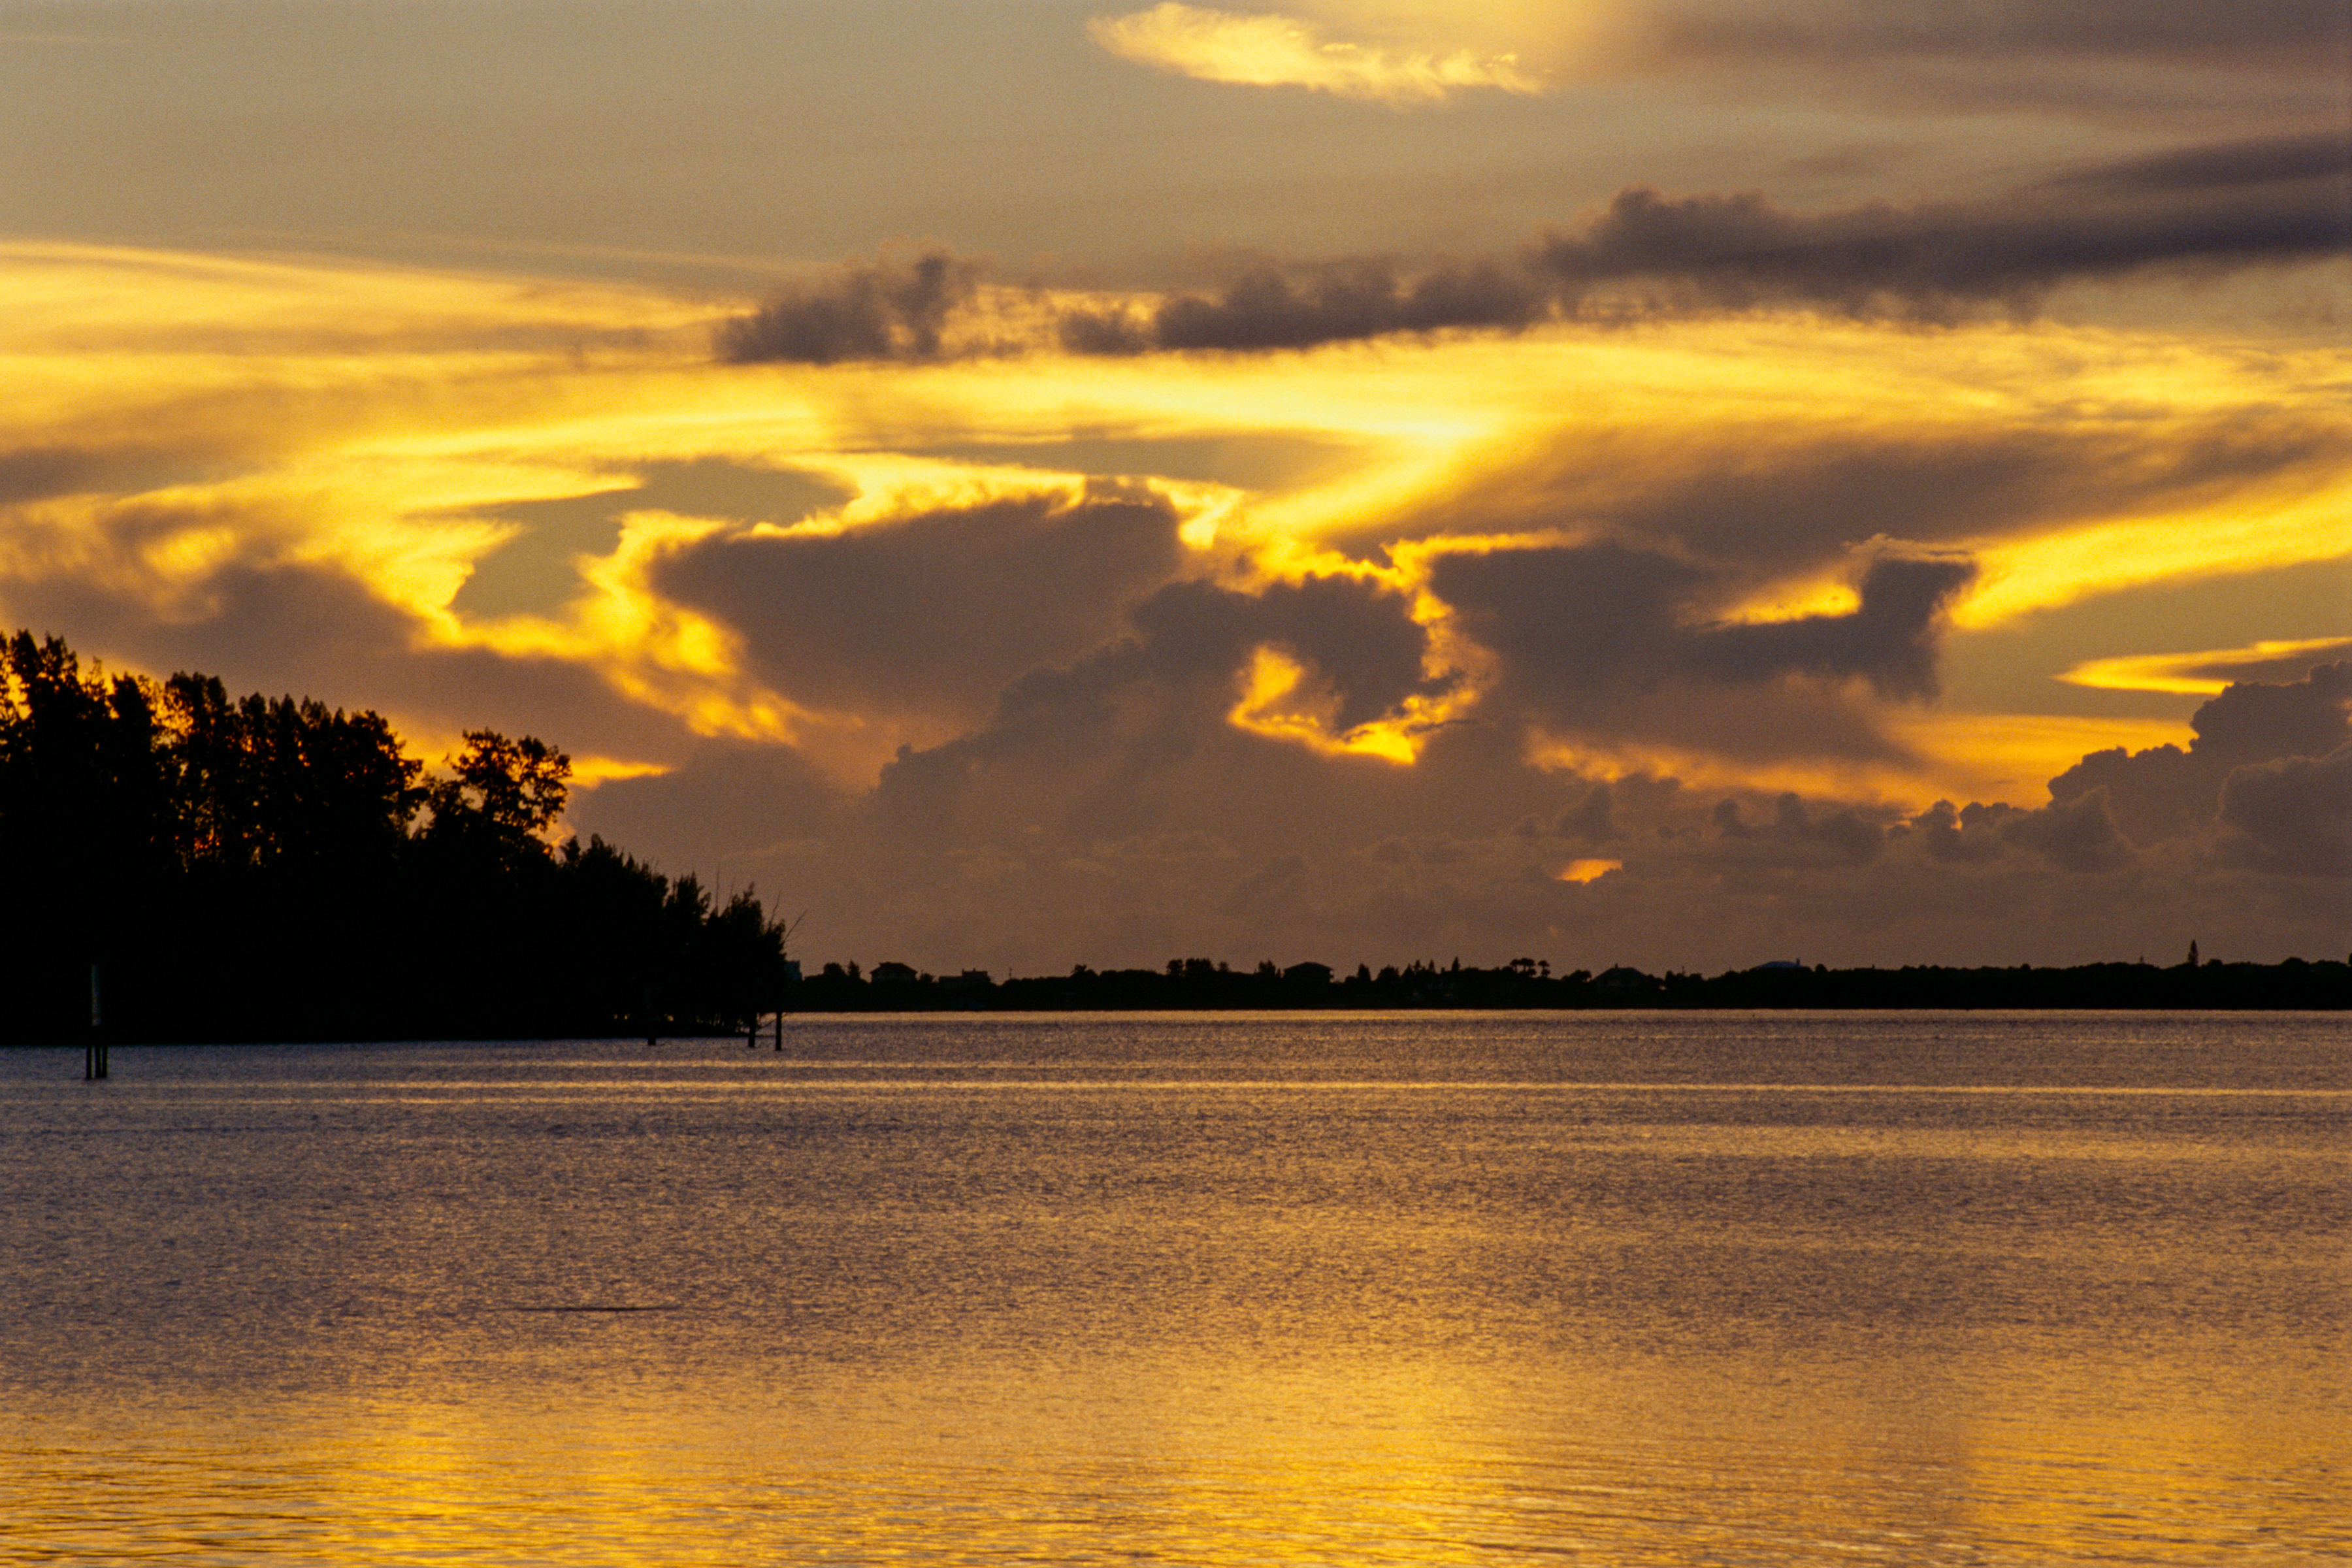 Golden sunrise over the Indian River Lagoon